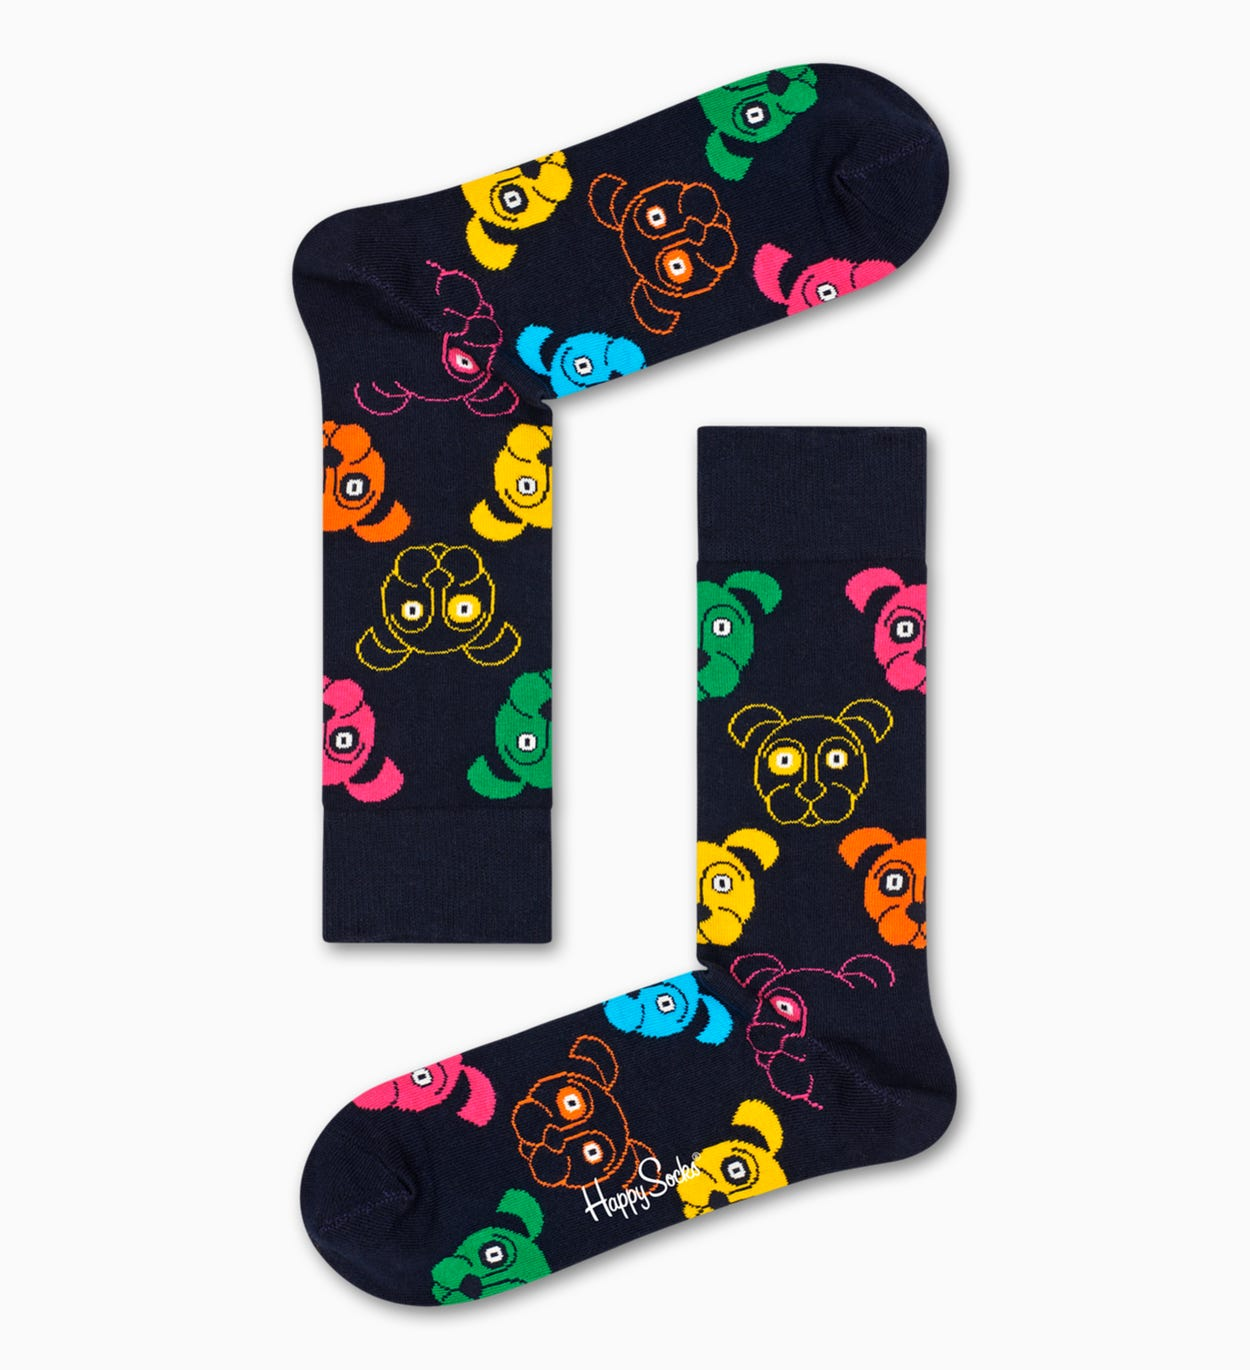 Colorful & Fun Dog Socks Gift Box 3pc | Happy Socks